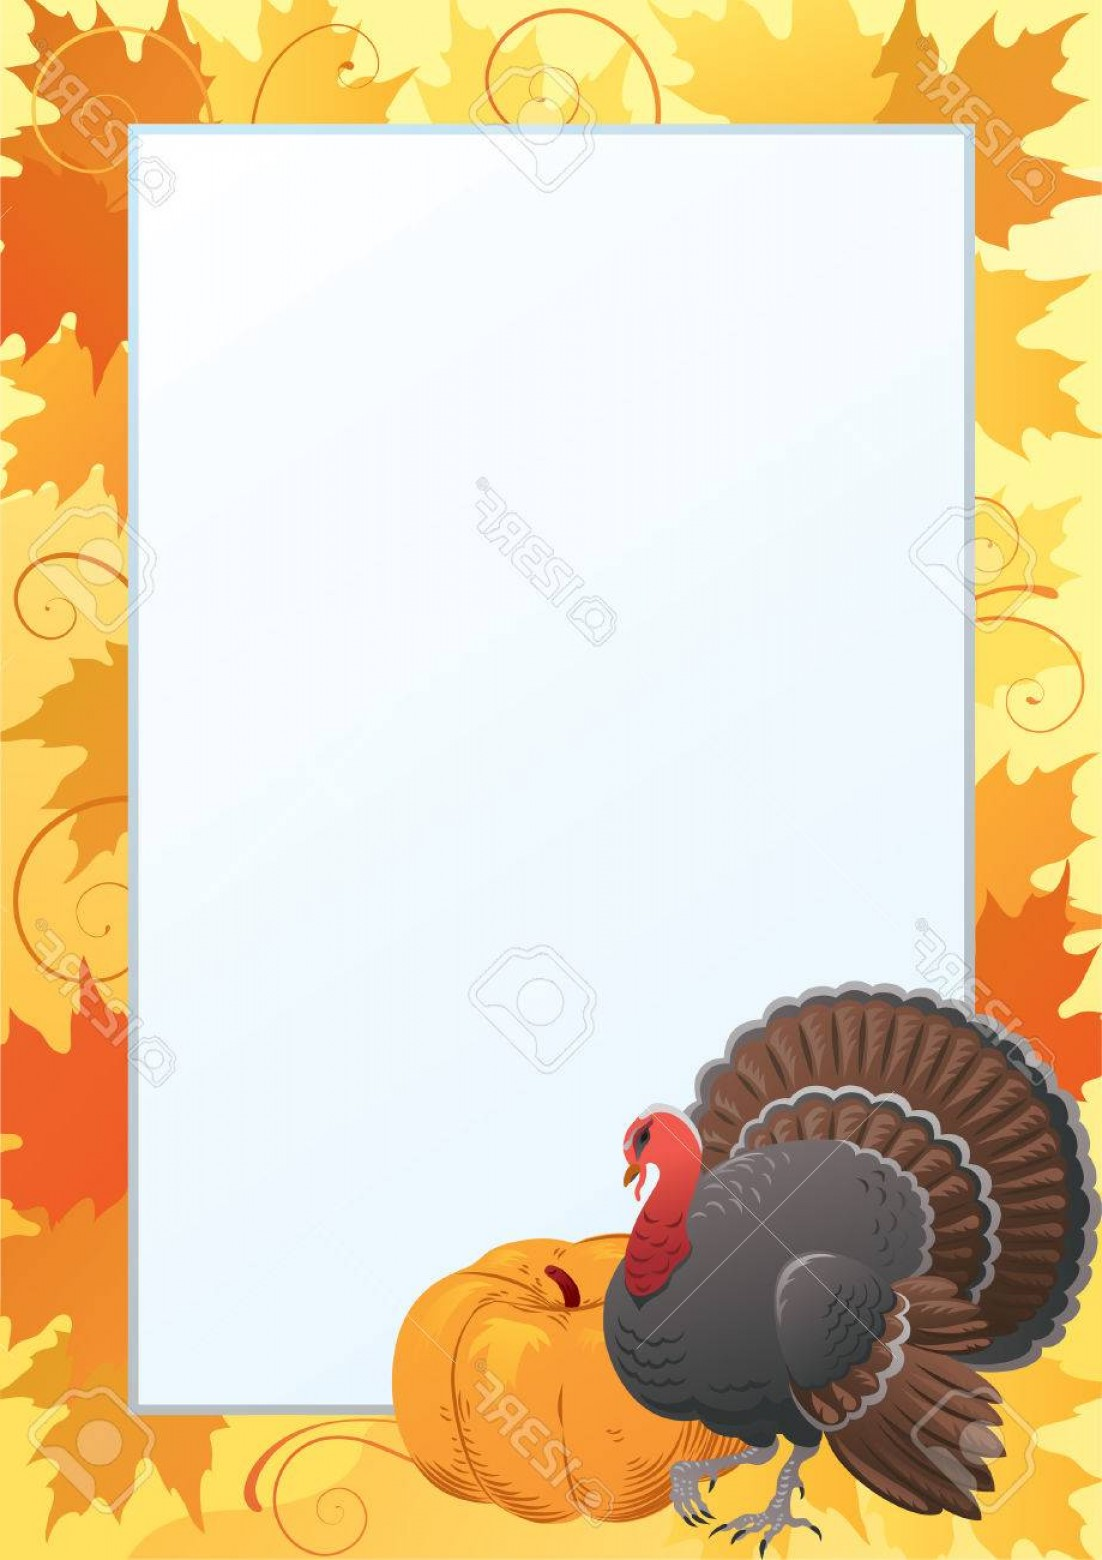 Thanksgiving Border Vector: Photostock Vector Thanksgiving Frame Vector Border With Turkey Pumpkin And Many Red And Yellow Maple Leaves